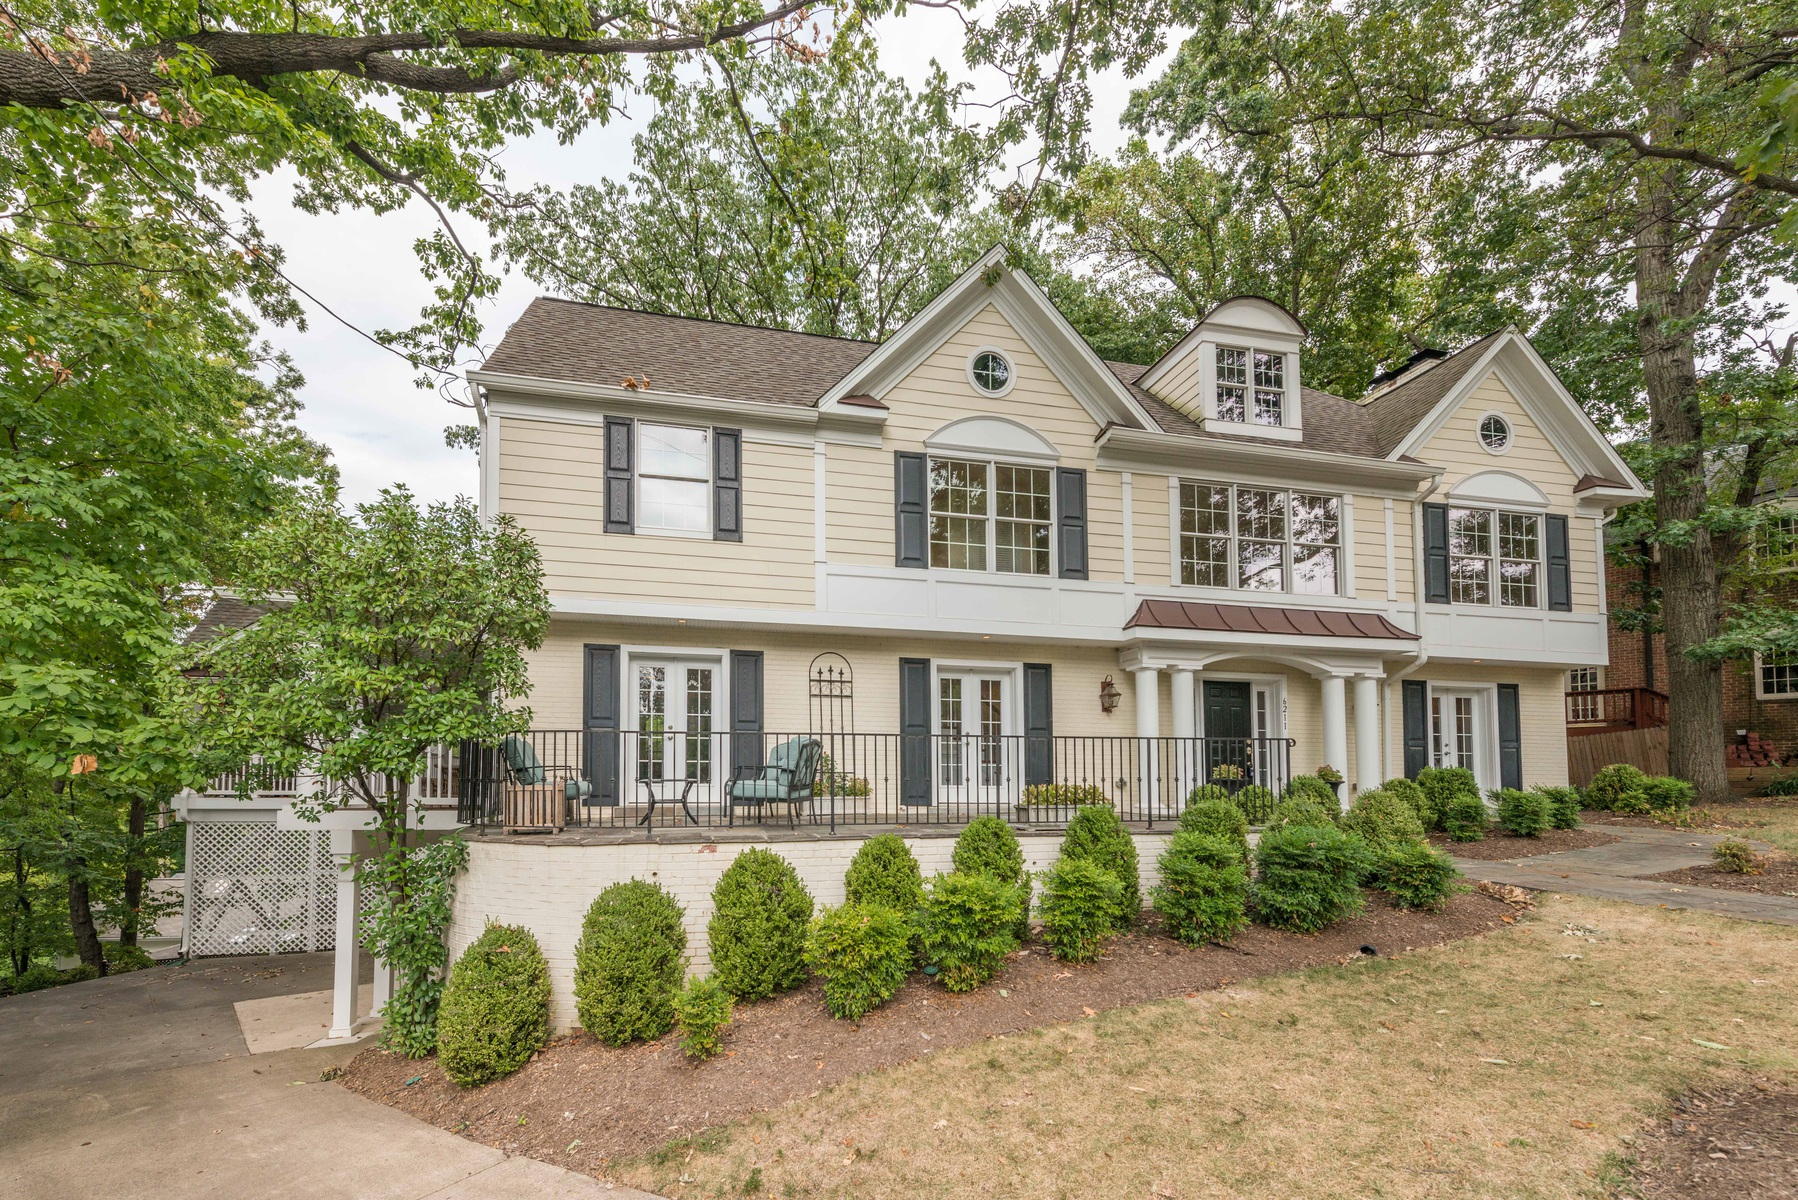 Single Family Home for Sale at 6211 Randall Court, Alexandria 6211 Randall Ct Alexandria, Virginia, 22307 United States